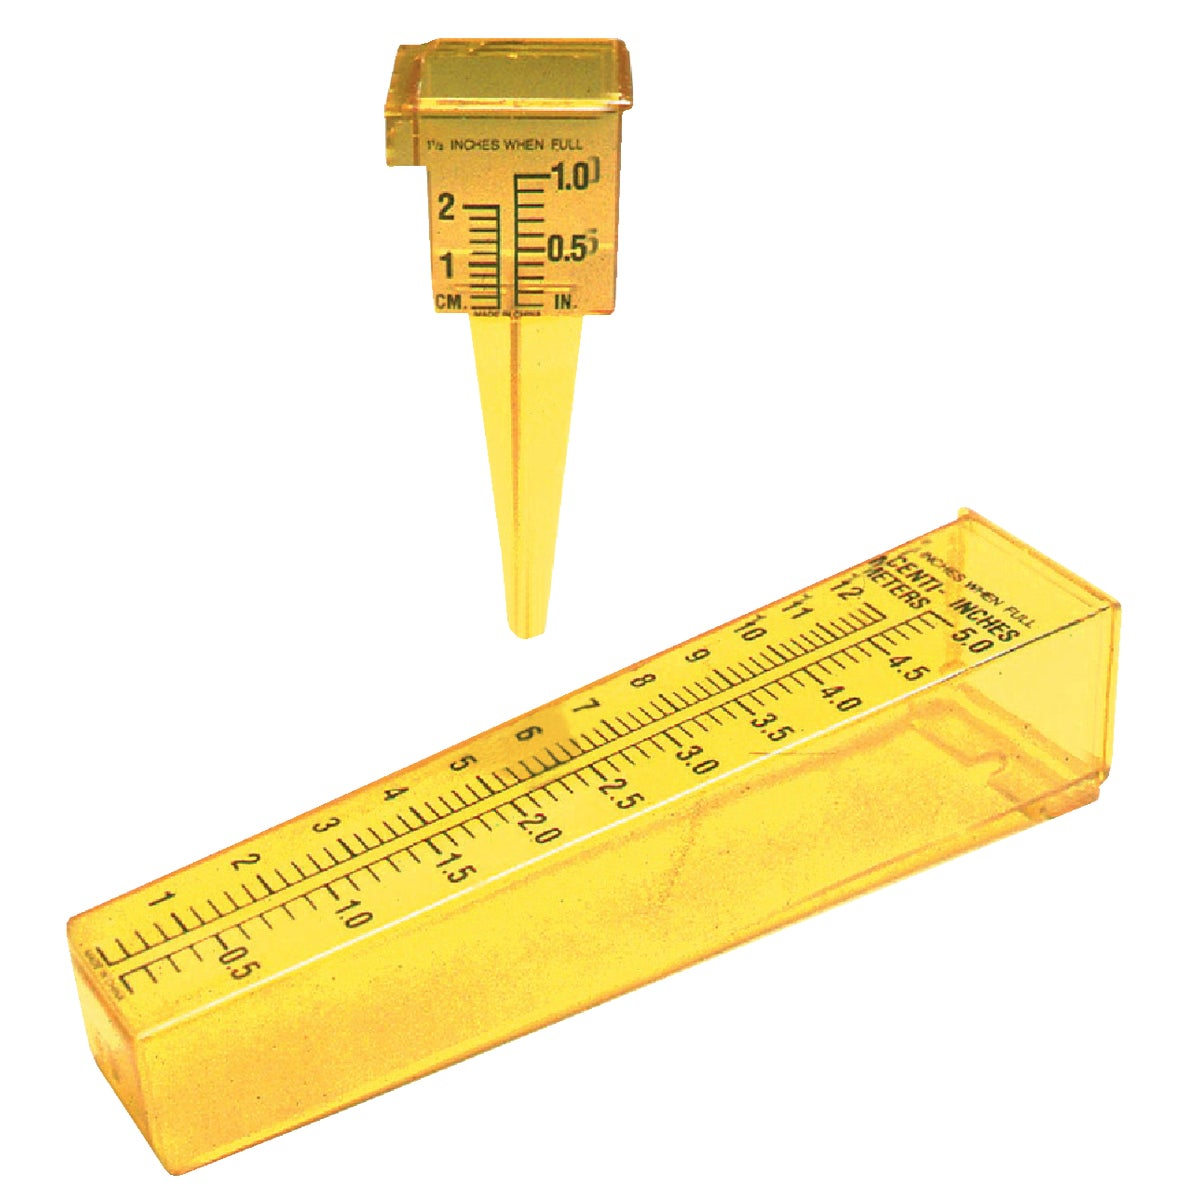 RAIN GAUGE - 2715 by Taylor Precision